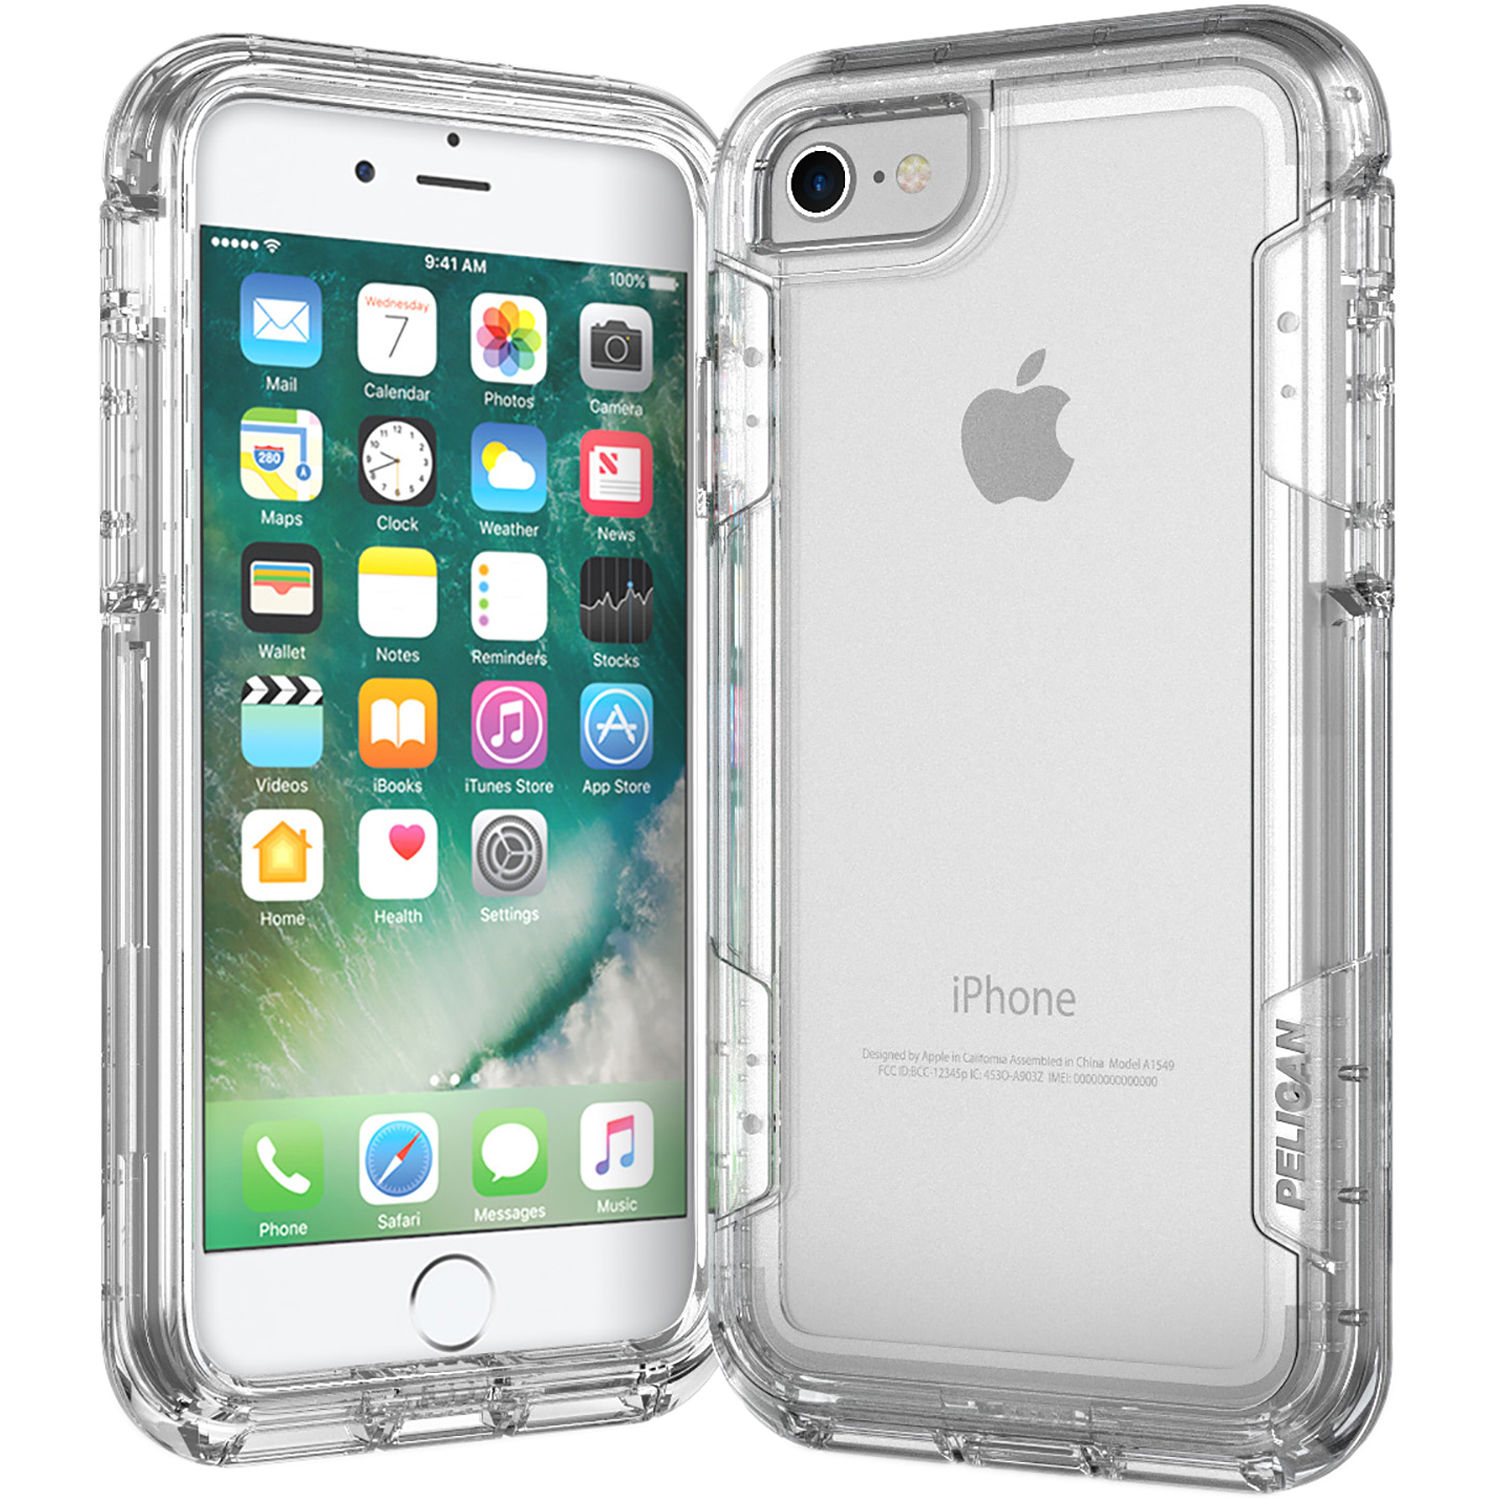 Voyager Iphone  Case